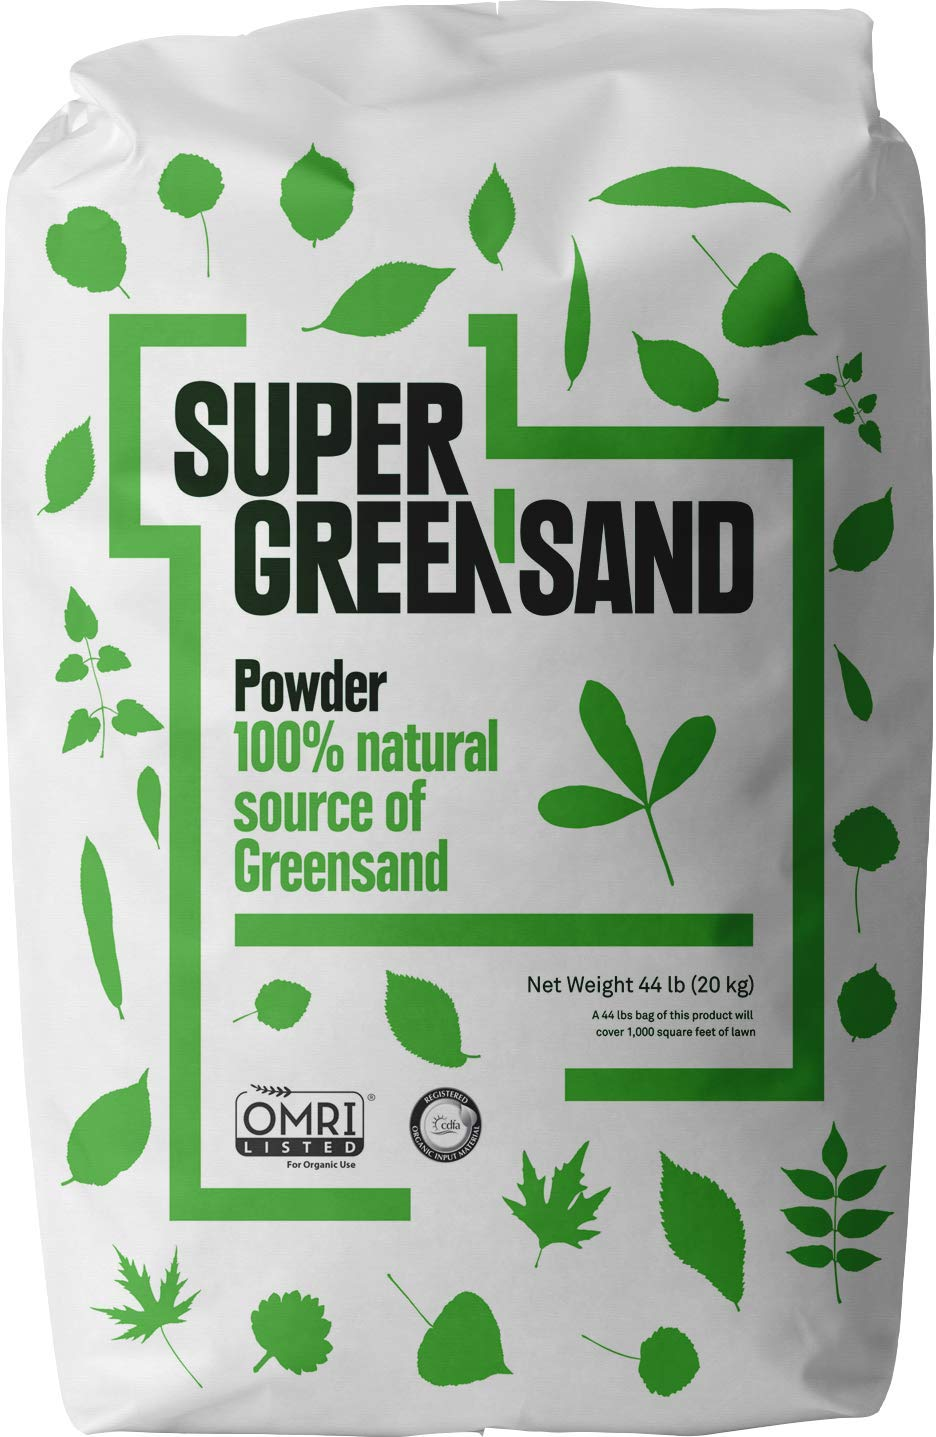 Super Greensand Powder, 70 Minerals and Trace Elements, 44 Pounds by Verde AgriTech